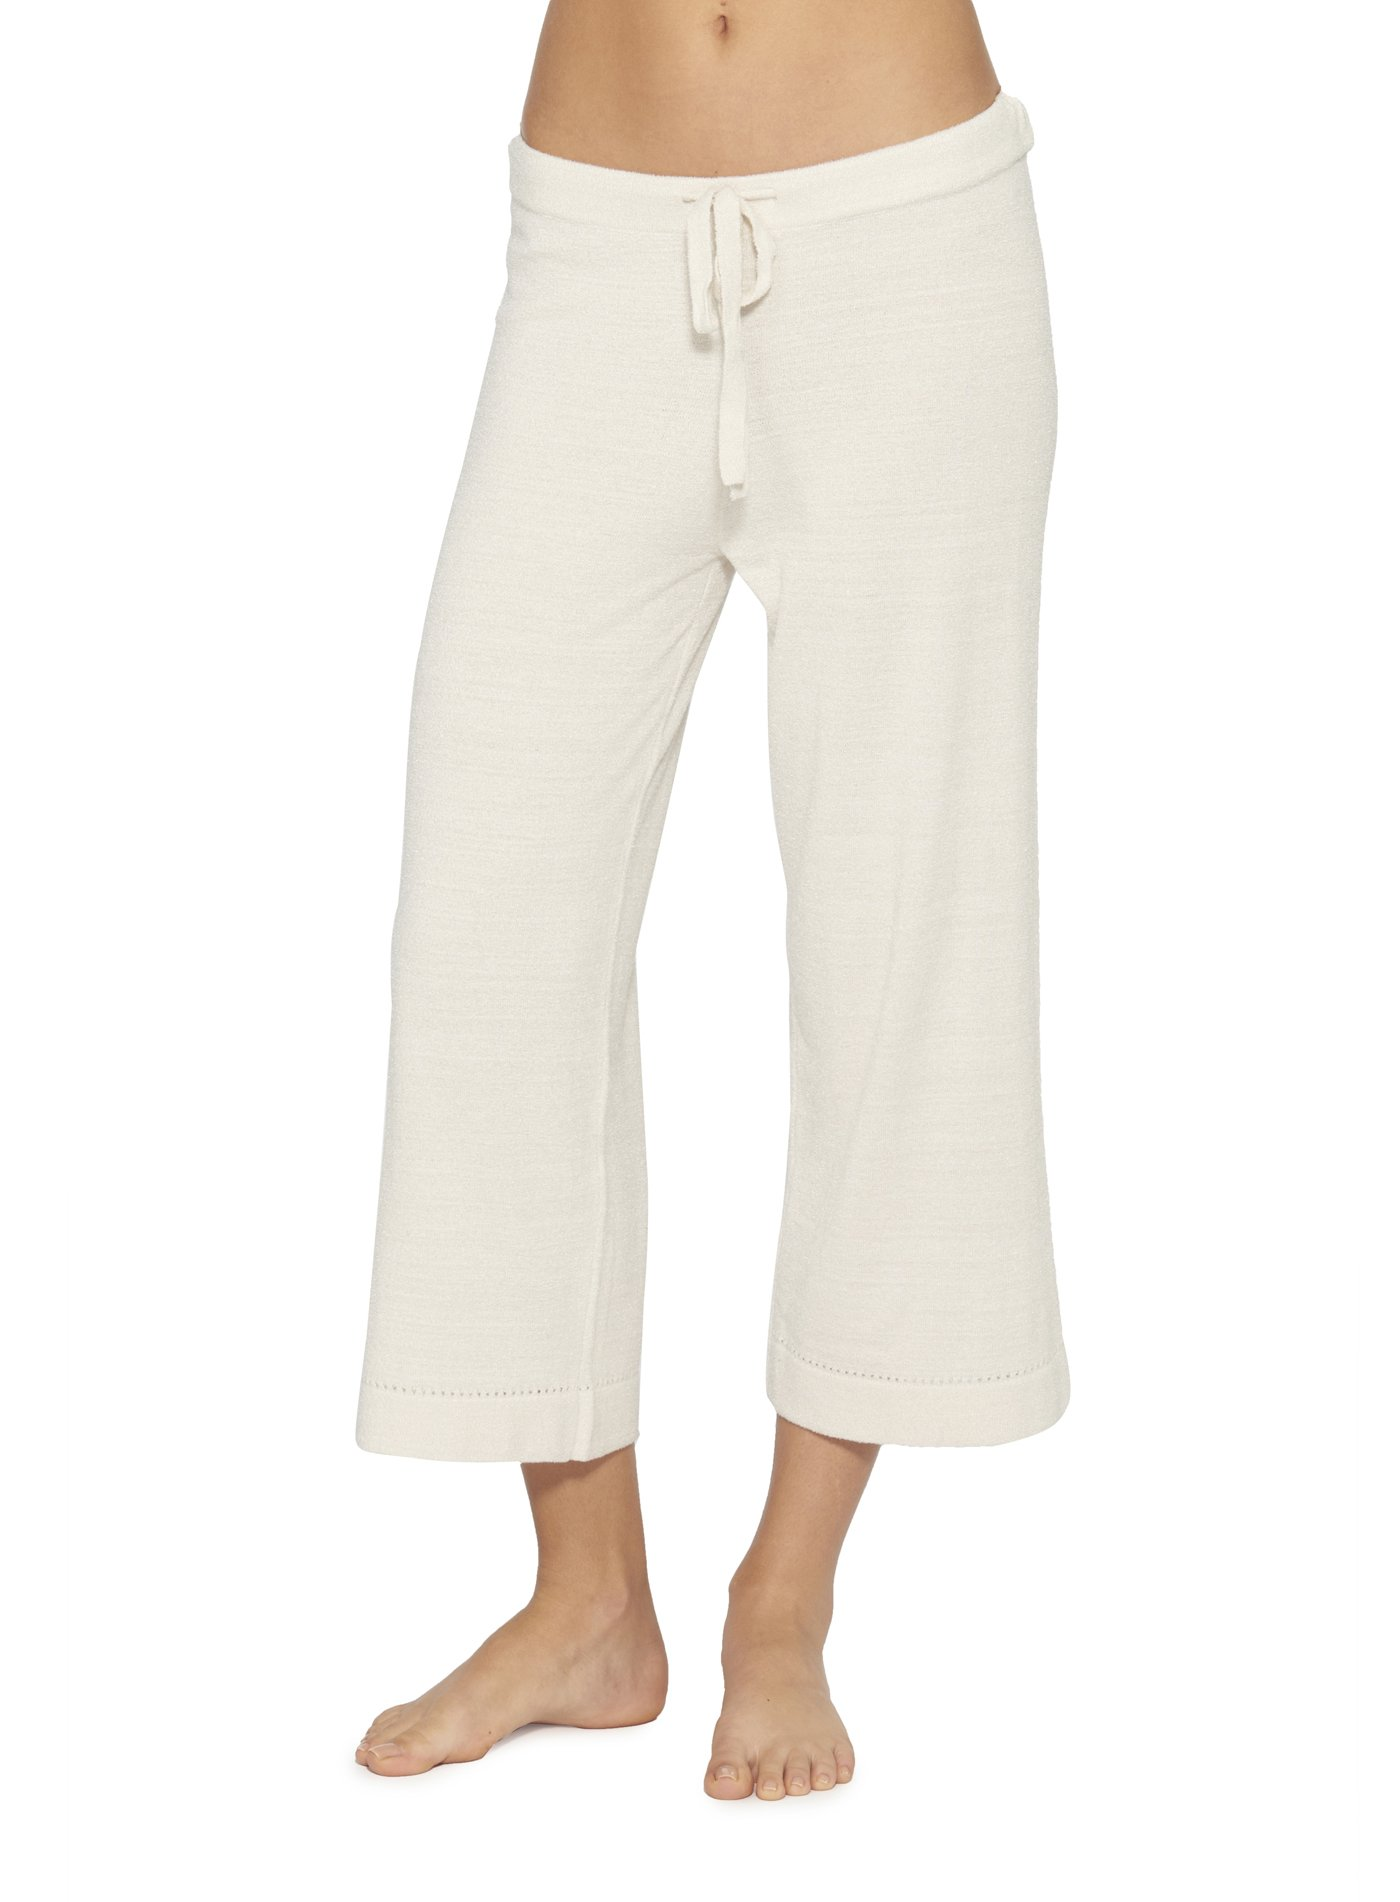 Barefoot Dreams CozyChic Ultra Lite Culotte Capri Pants - Small - By Barefoot Dreams, Sand Dune